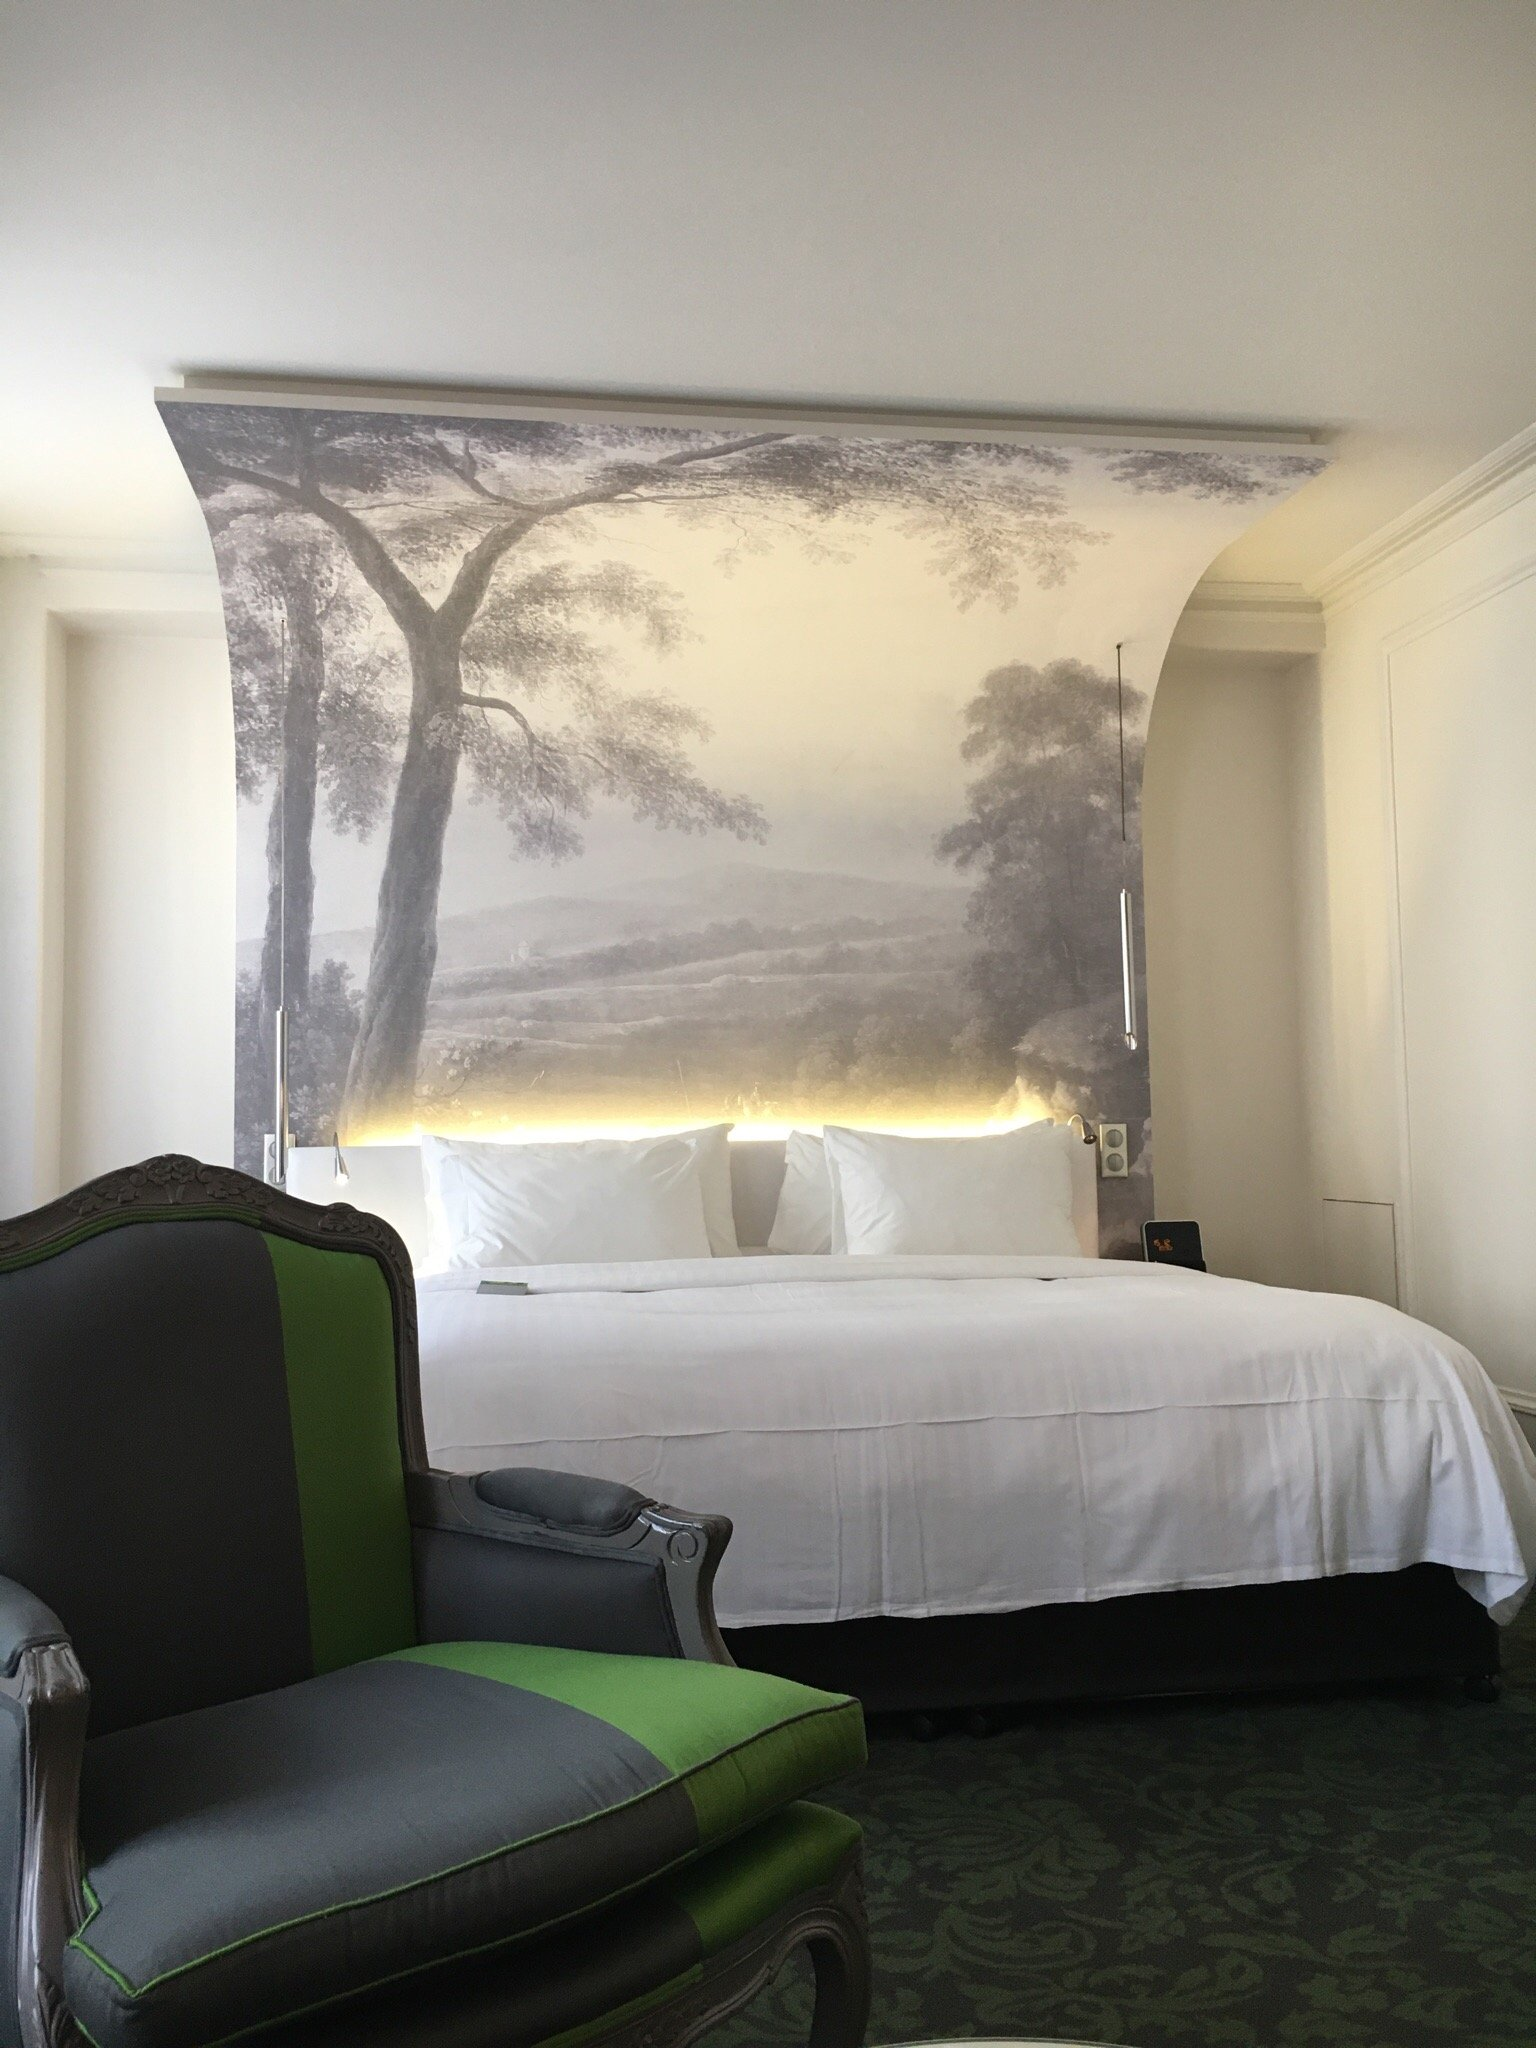 Hotel Des Champs Elysees Melia Paris Champs Elysees Updated 2017 Prices Hotel Reviews